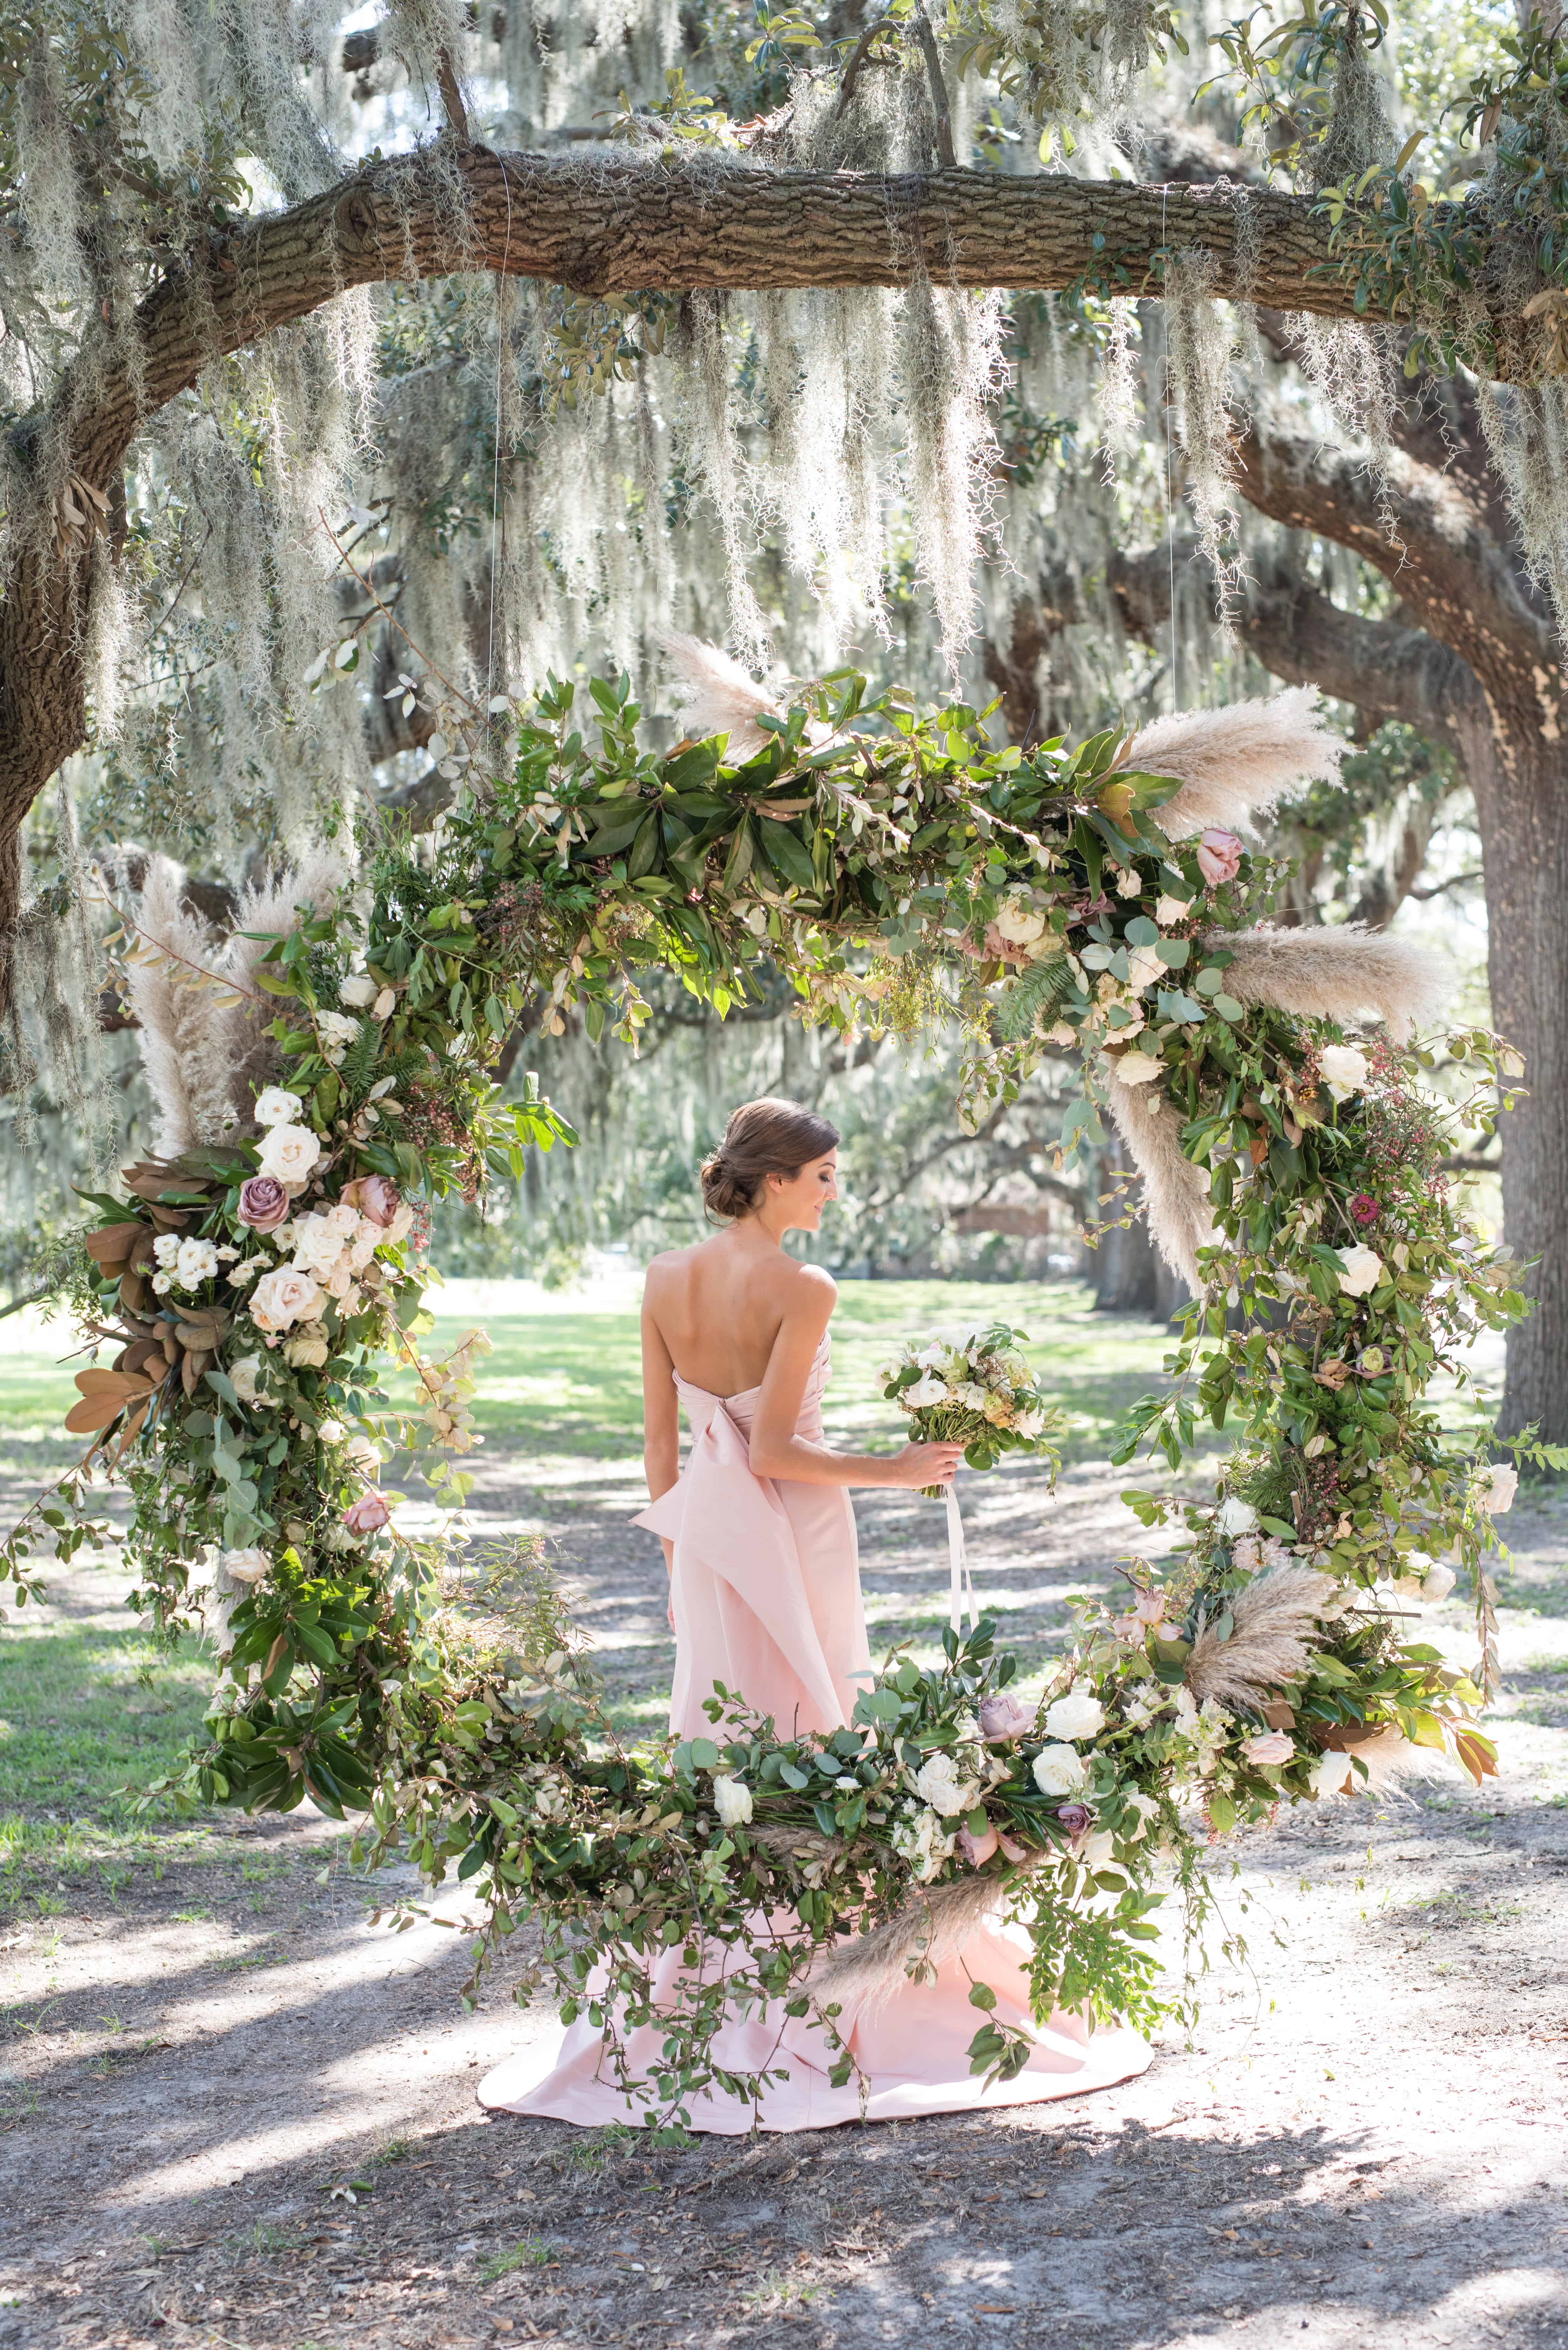 wholesale vases san diego of mayesh wholesale florist floral design for have you ever wondered though where you can get your hands on a moon gate arch or floral hoop if you have look no further because we did the research